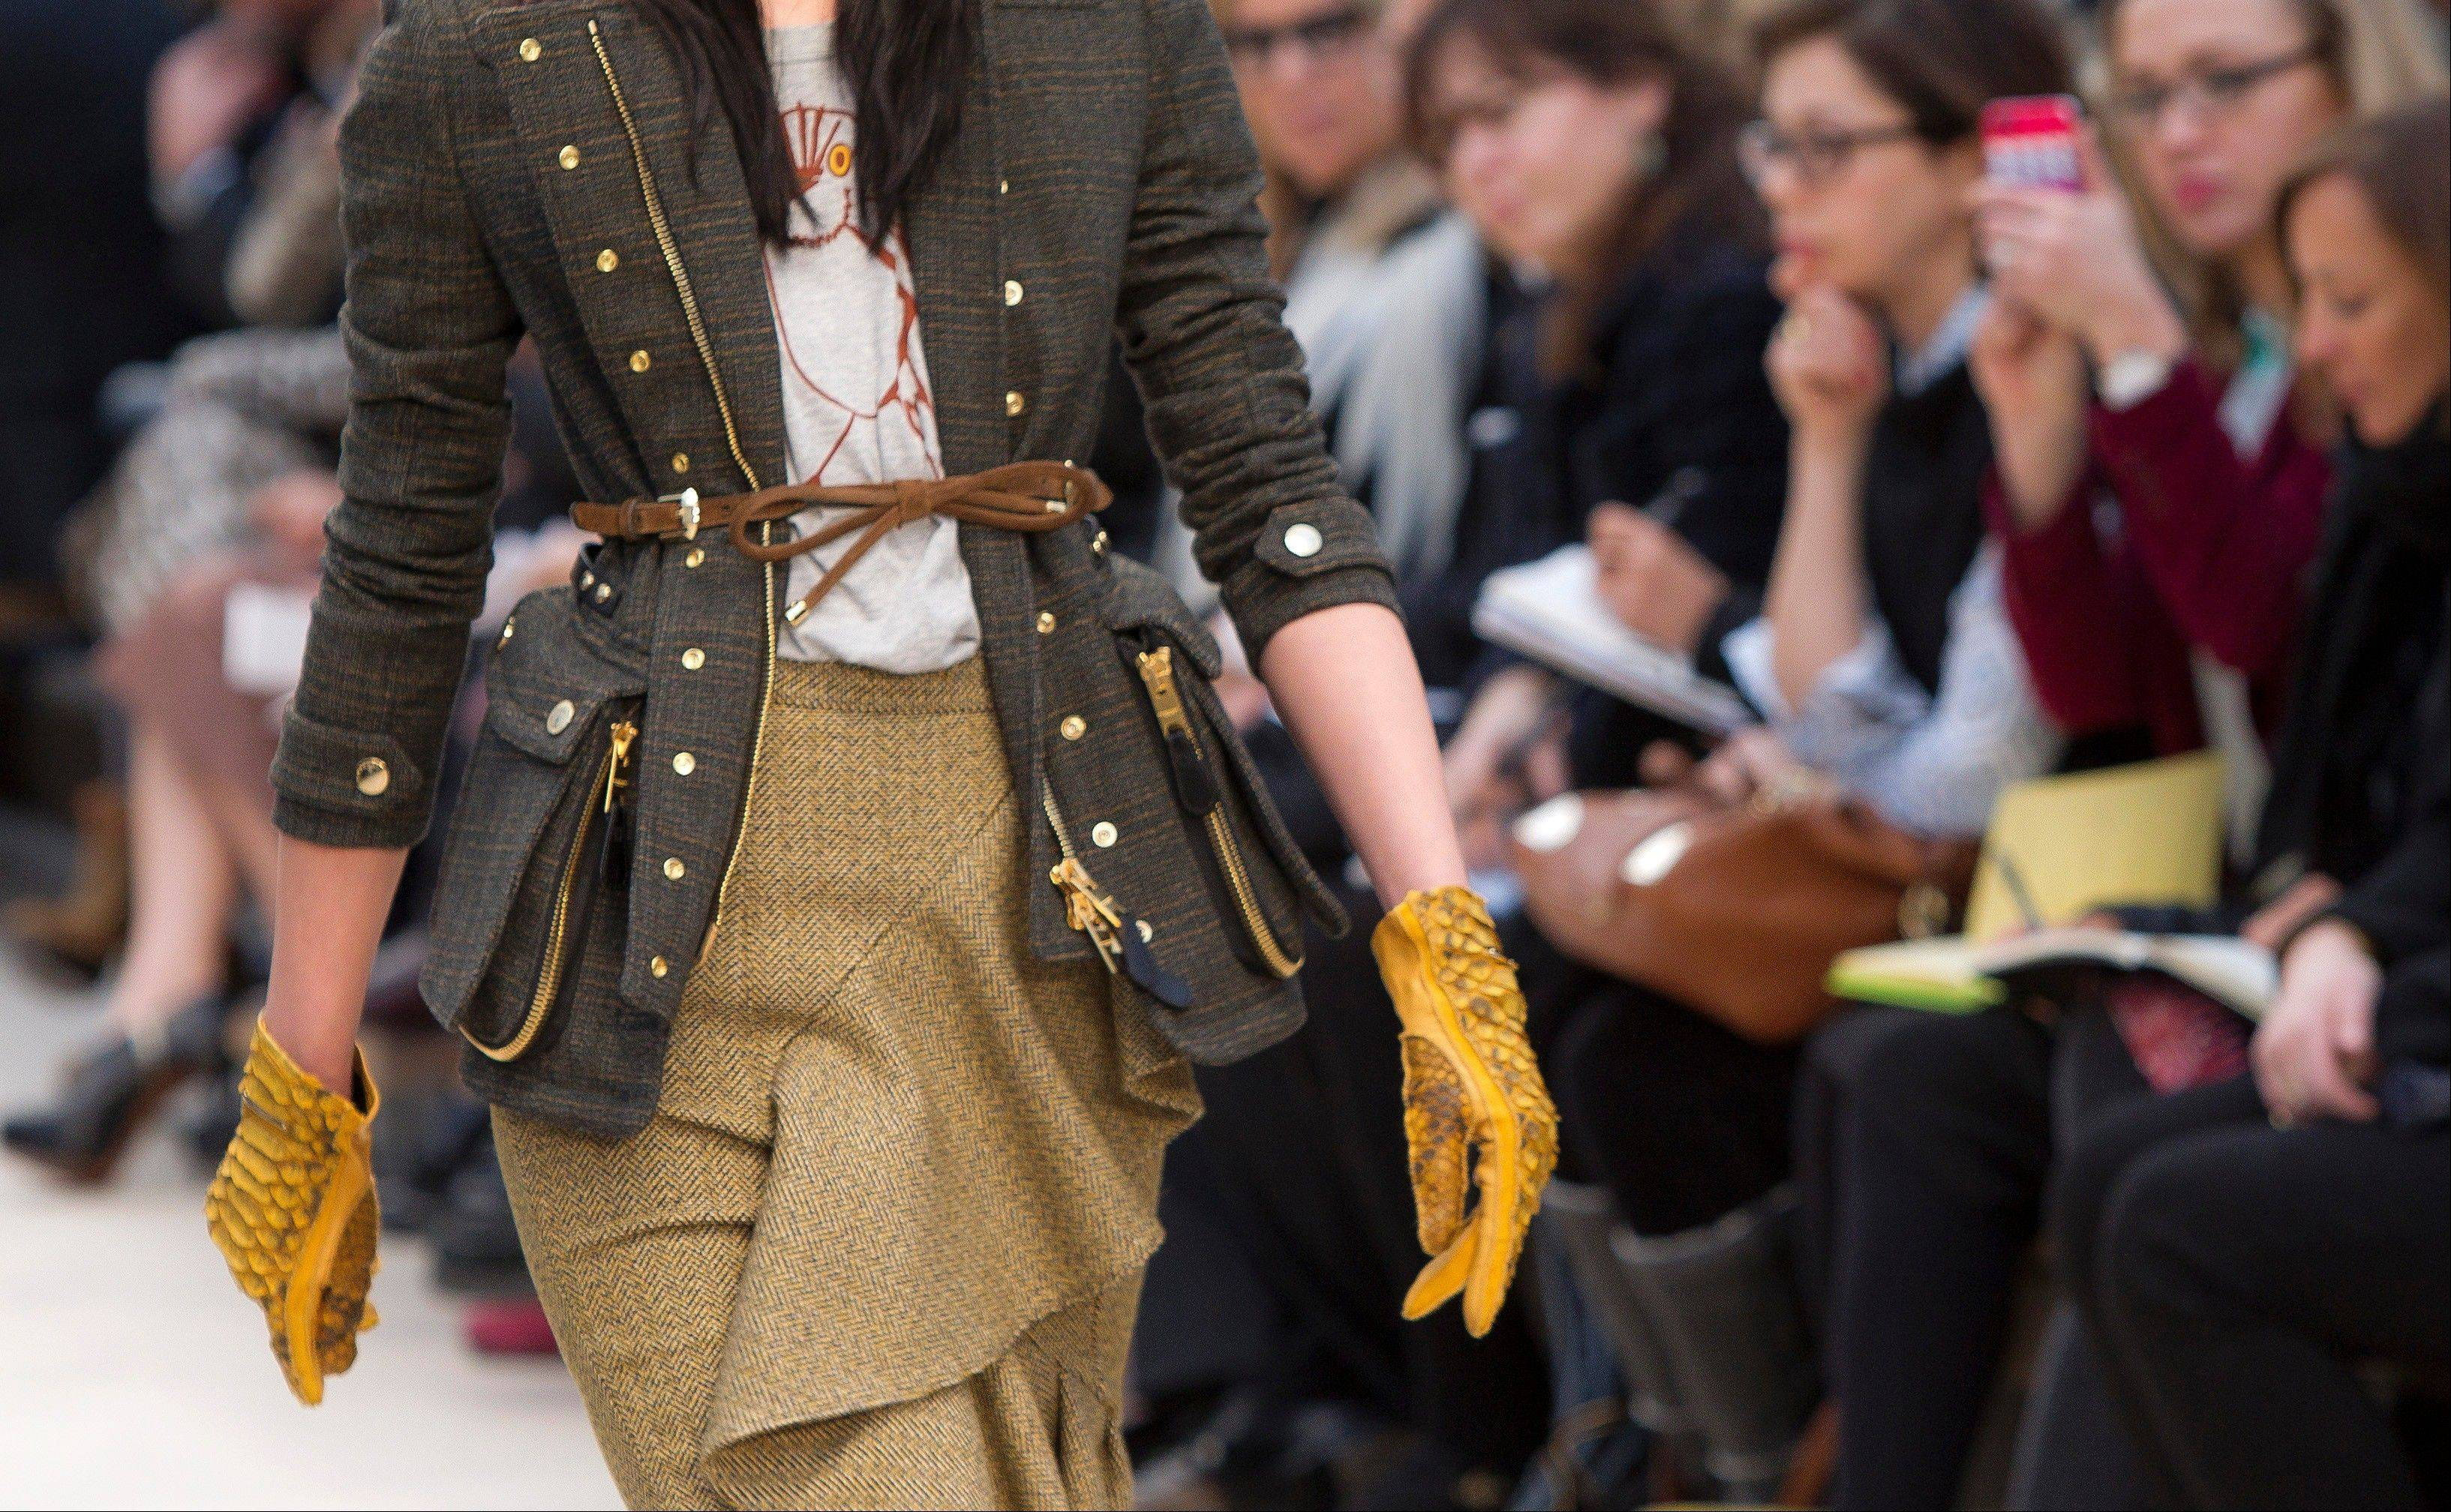 Burberry Group Plc, the U.K.'s largest luxury-goods maker, said full-year profit will disappoint after sales growth slowed globally, sending the shares down the most ever and rattling those of peers.